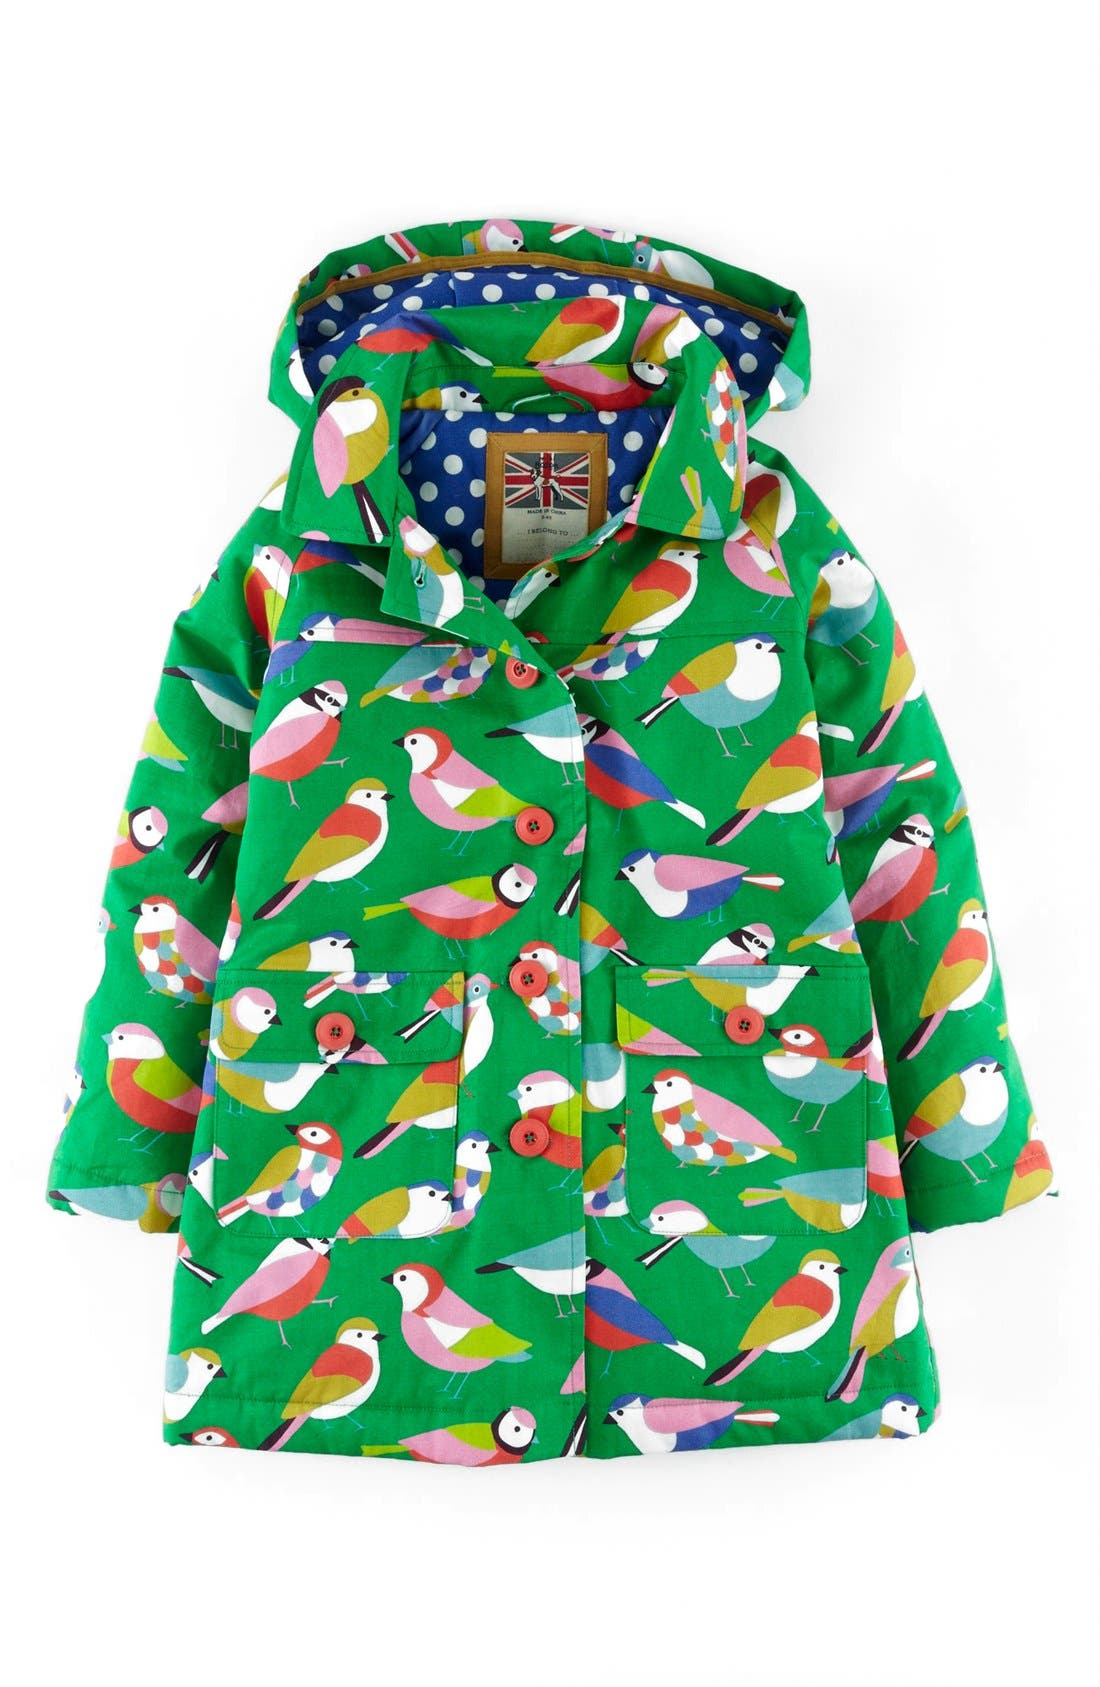 Alternate Image 1 Selected - Mini Boden Fun Waterproof Hooded Jacket (Toddler Girls, Little Girls & Big Girls)